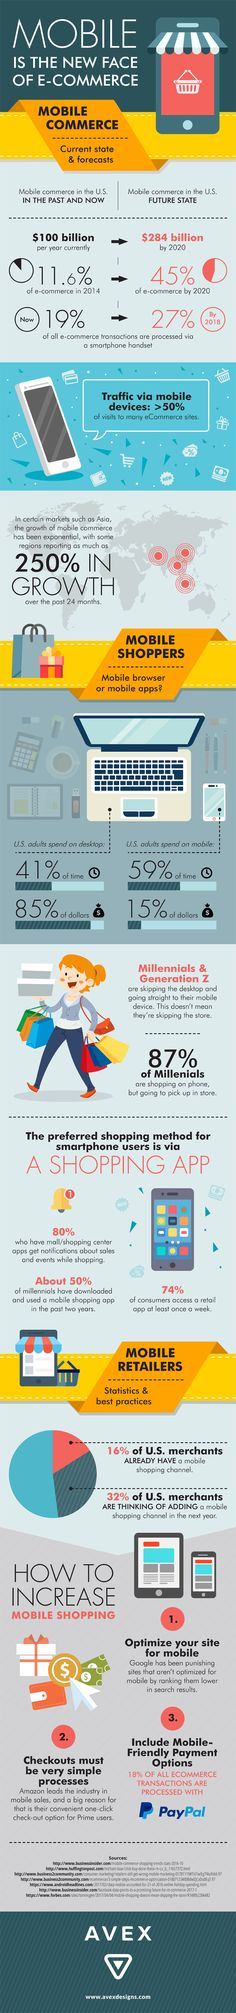 #Mobile is the New Face of #e-commerce - Do you fancy an infographic?  There are a lot of them online, but if you want your own please visit http://linfografico.com/en/prices/  Online girano molte infografiche, se ne vuoi realizzare una tutta tua visita http://www.linfografico.com/prezzi/